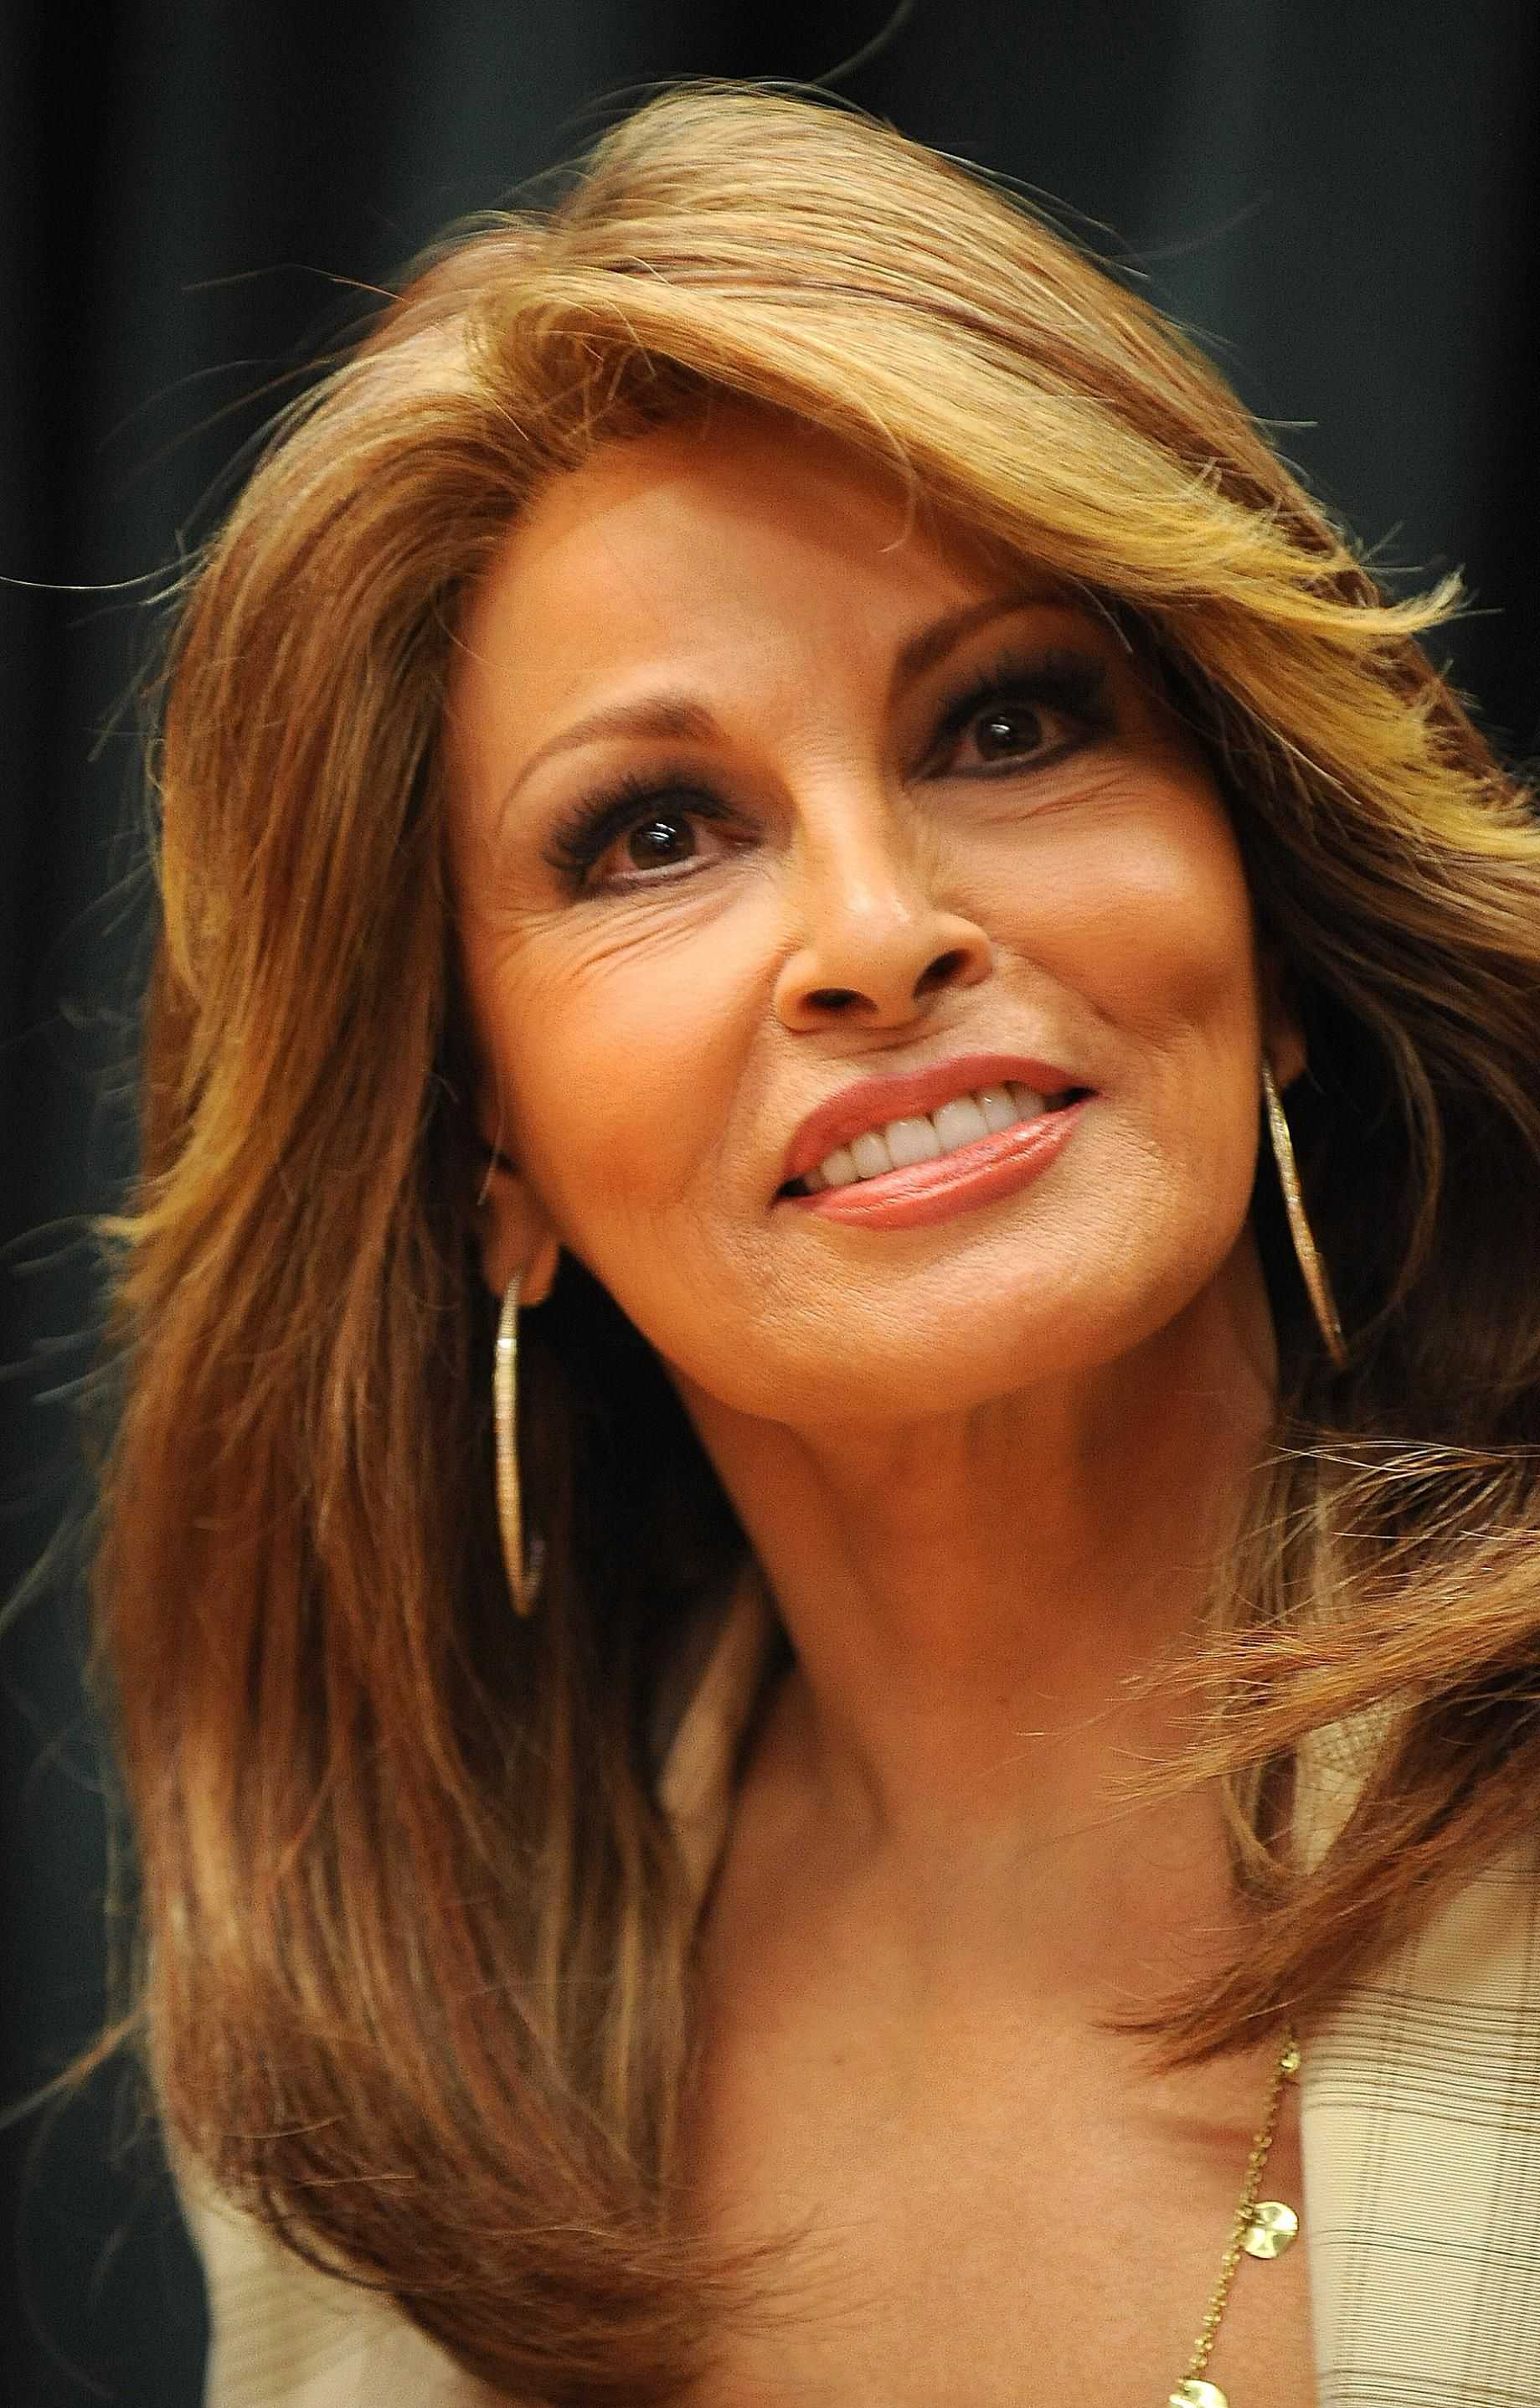 Cleavage Raquel Welch nude photos 2019